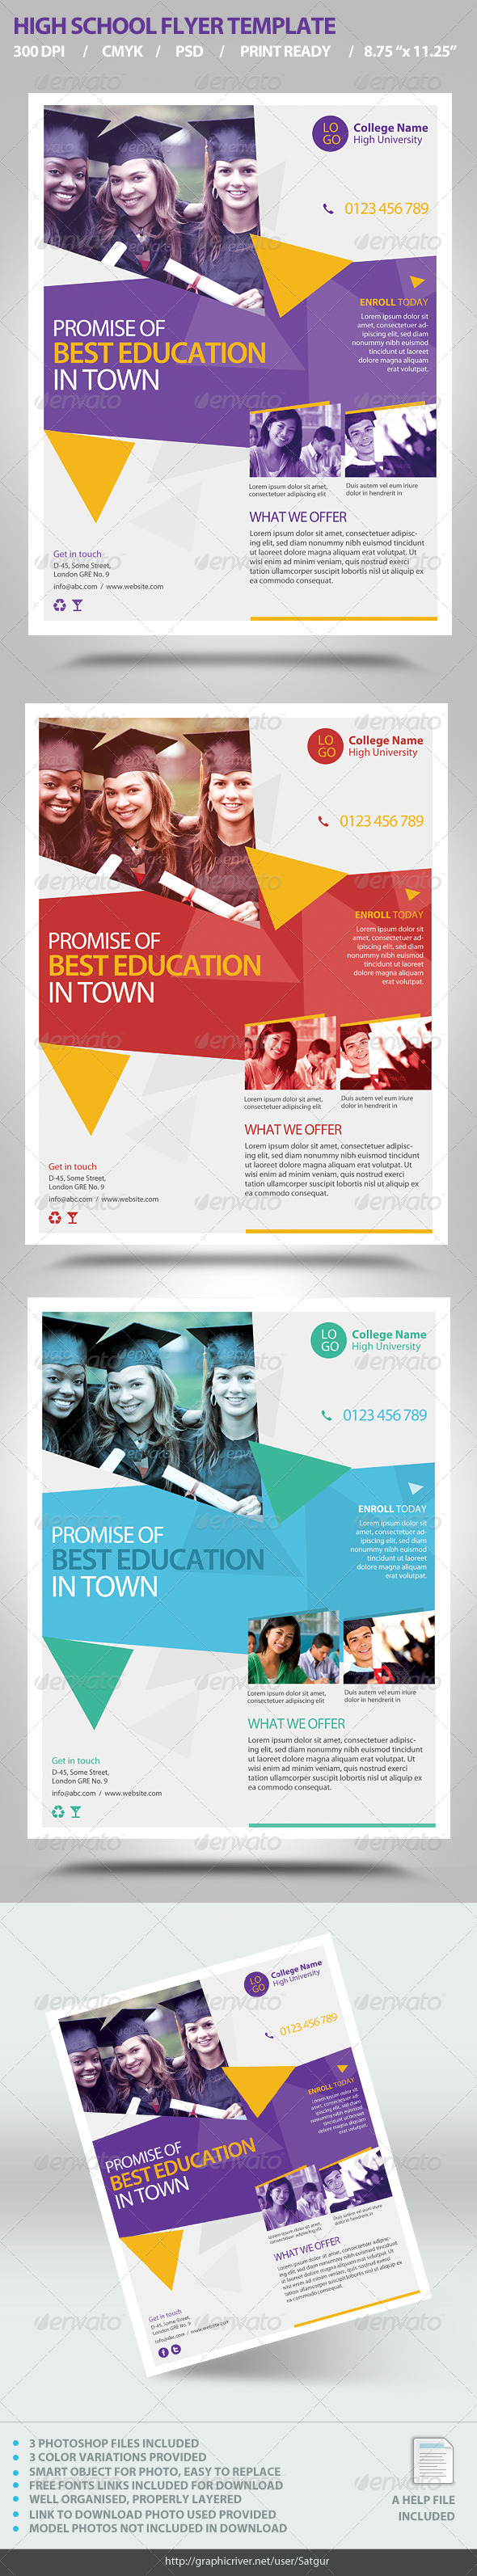 high school flyer template by satgur graphicriver